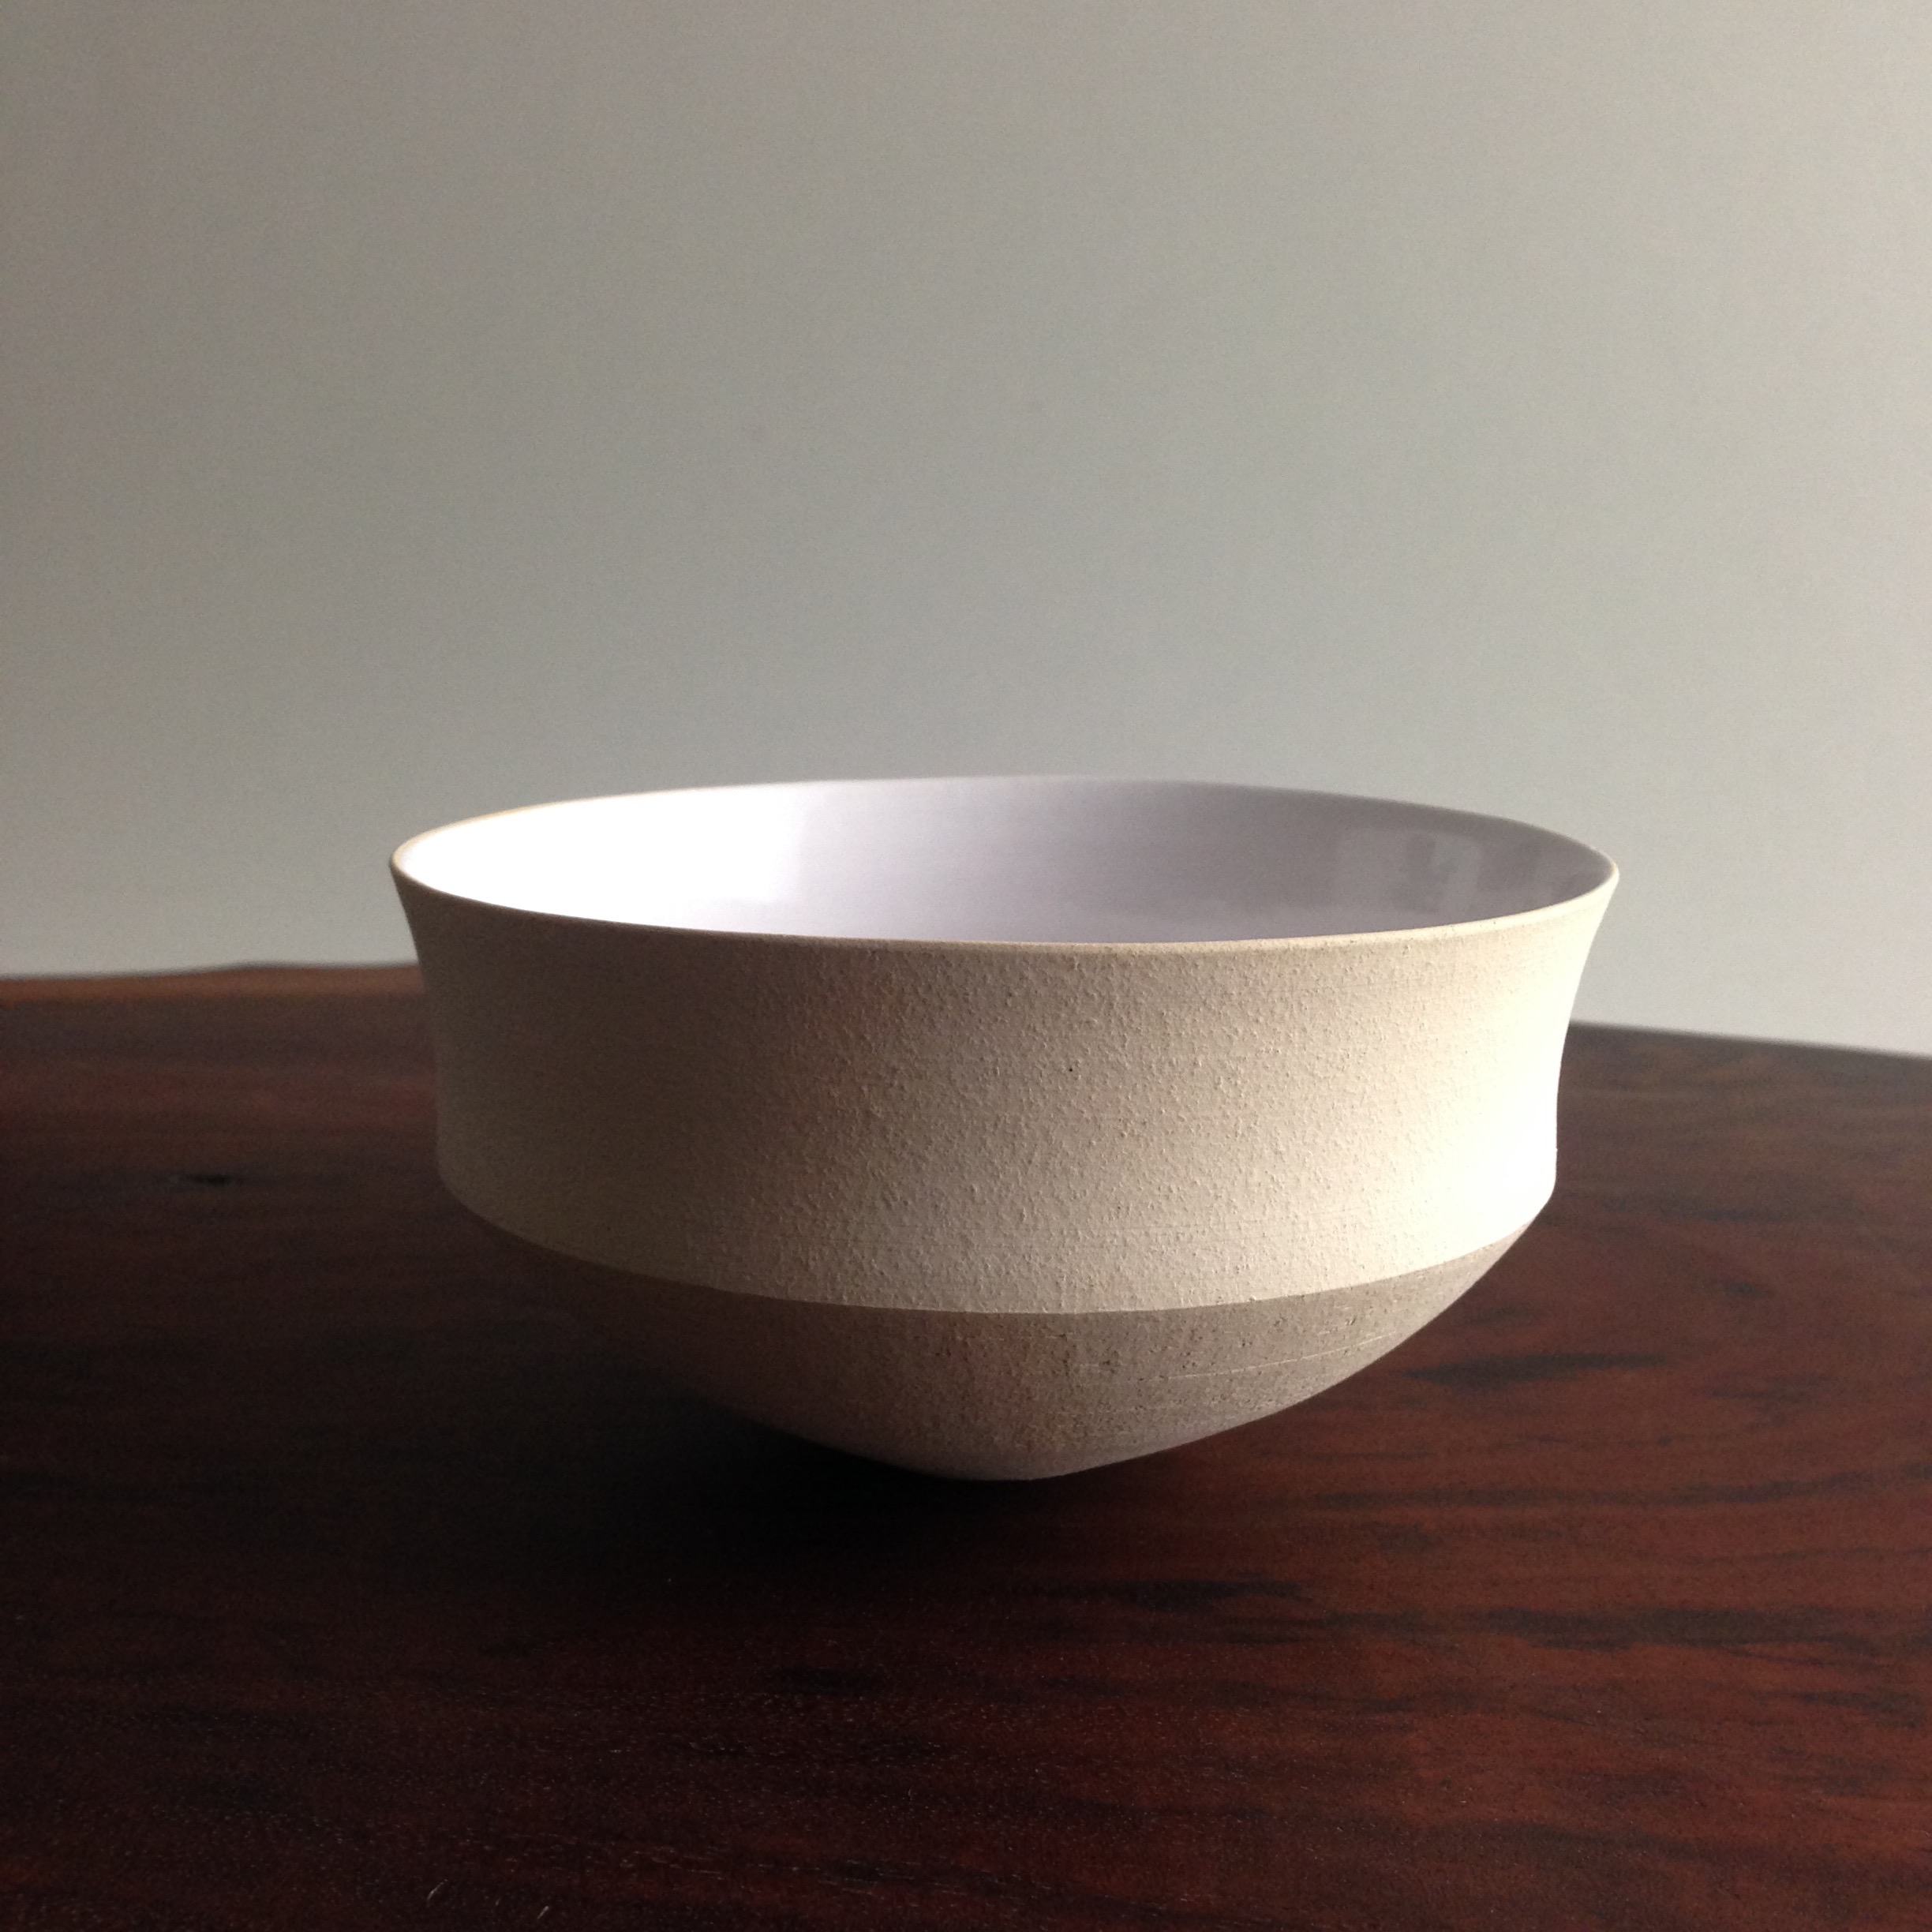 Ceramic tableware serving bowl by Lilith Rockett, Portland, Oregon